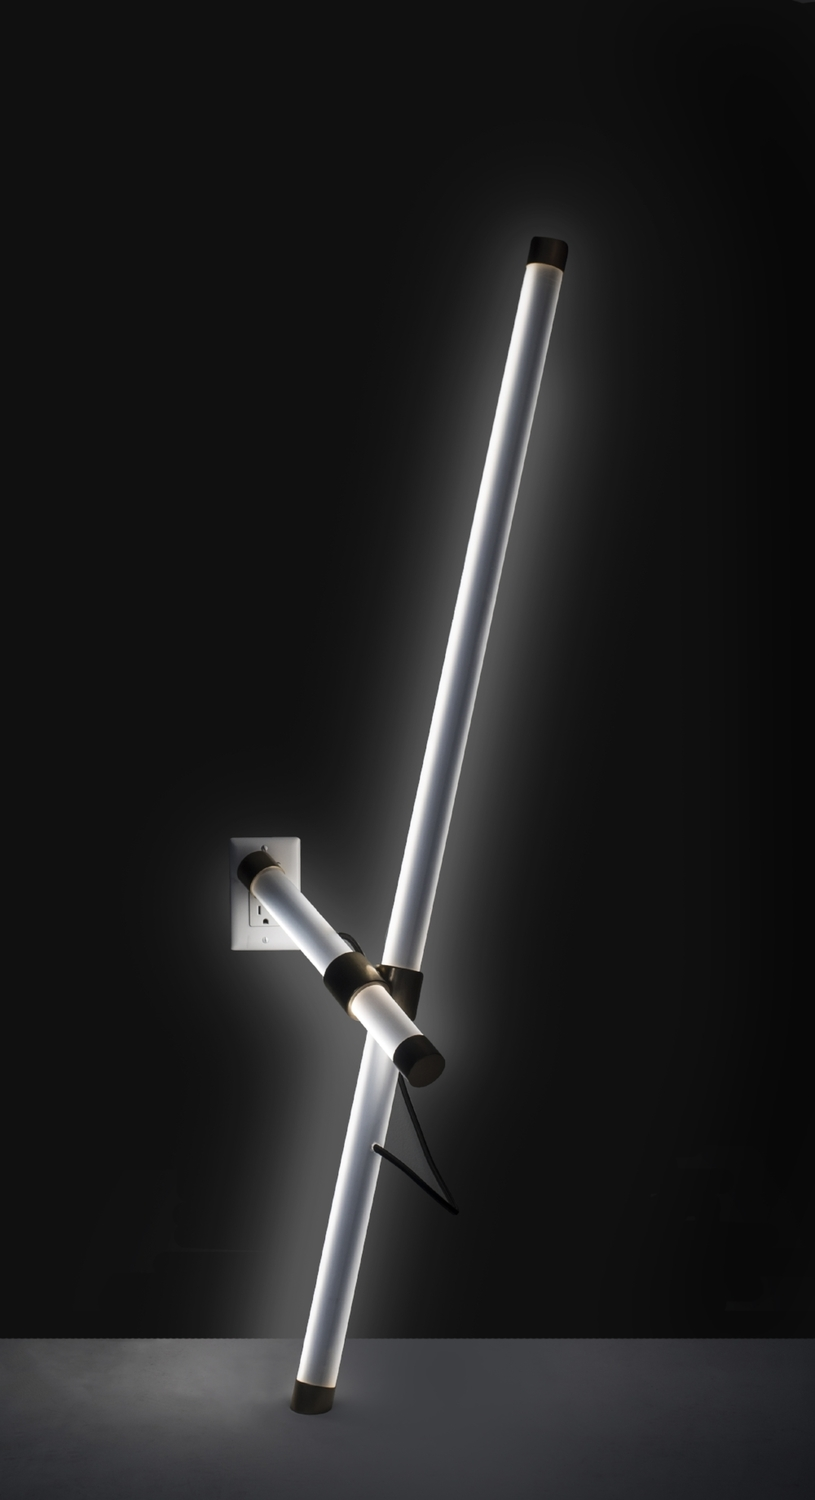 Leaning axis light 1.2